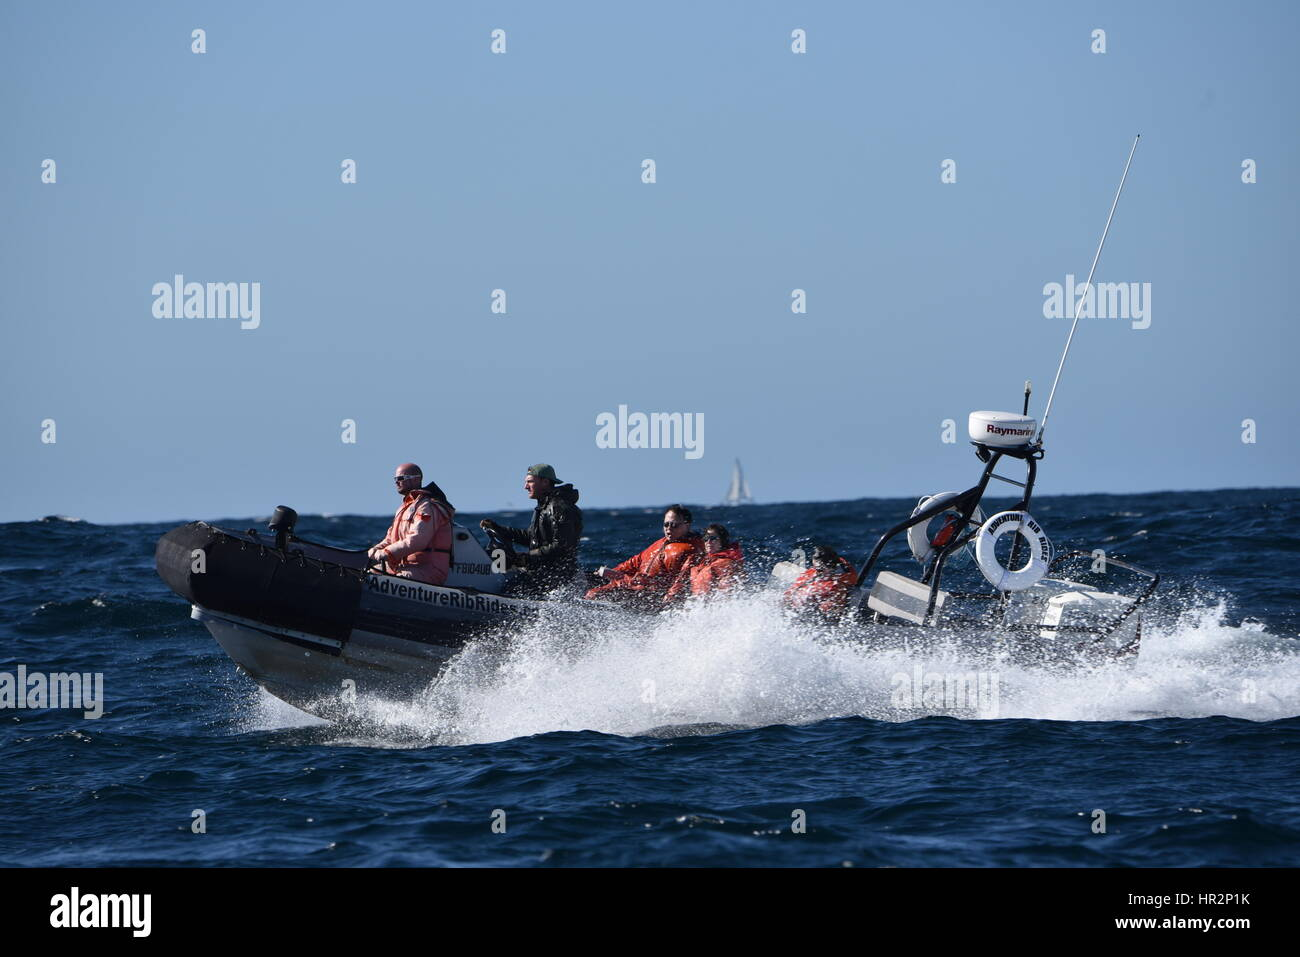 Whale watching ecotourism adventure in small speeding boat, crashing through waves, in Pacific Ocean outside San - Stock Image